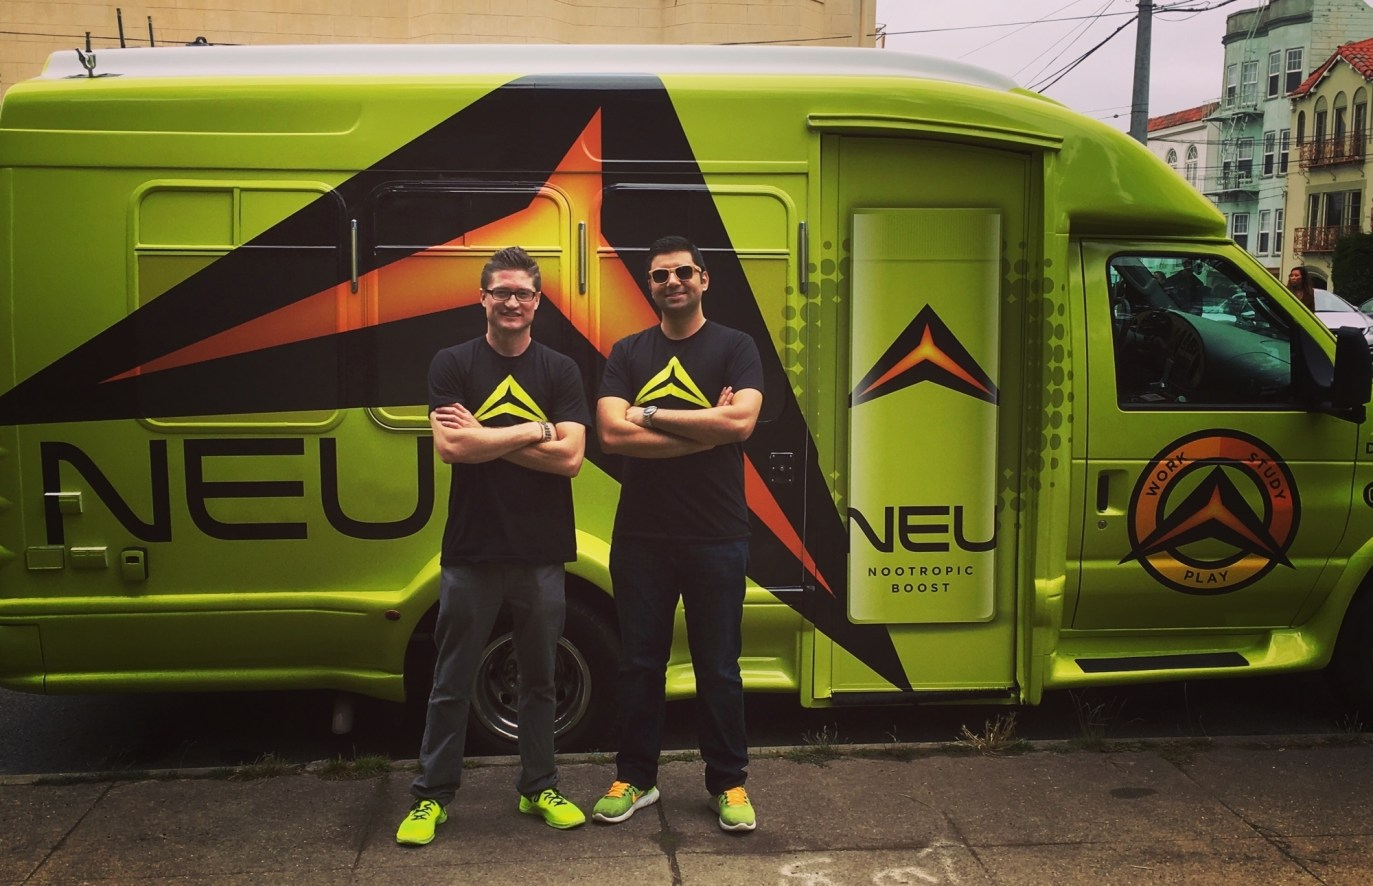 drinkneu car wrap-05